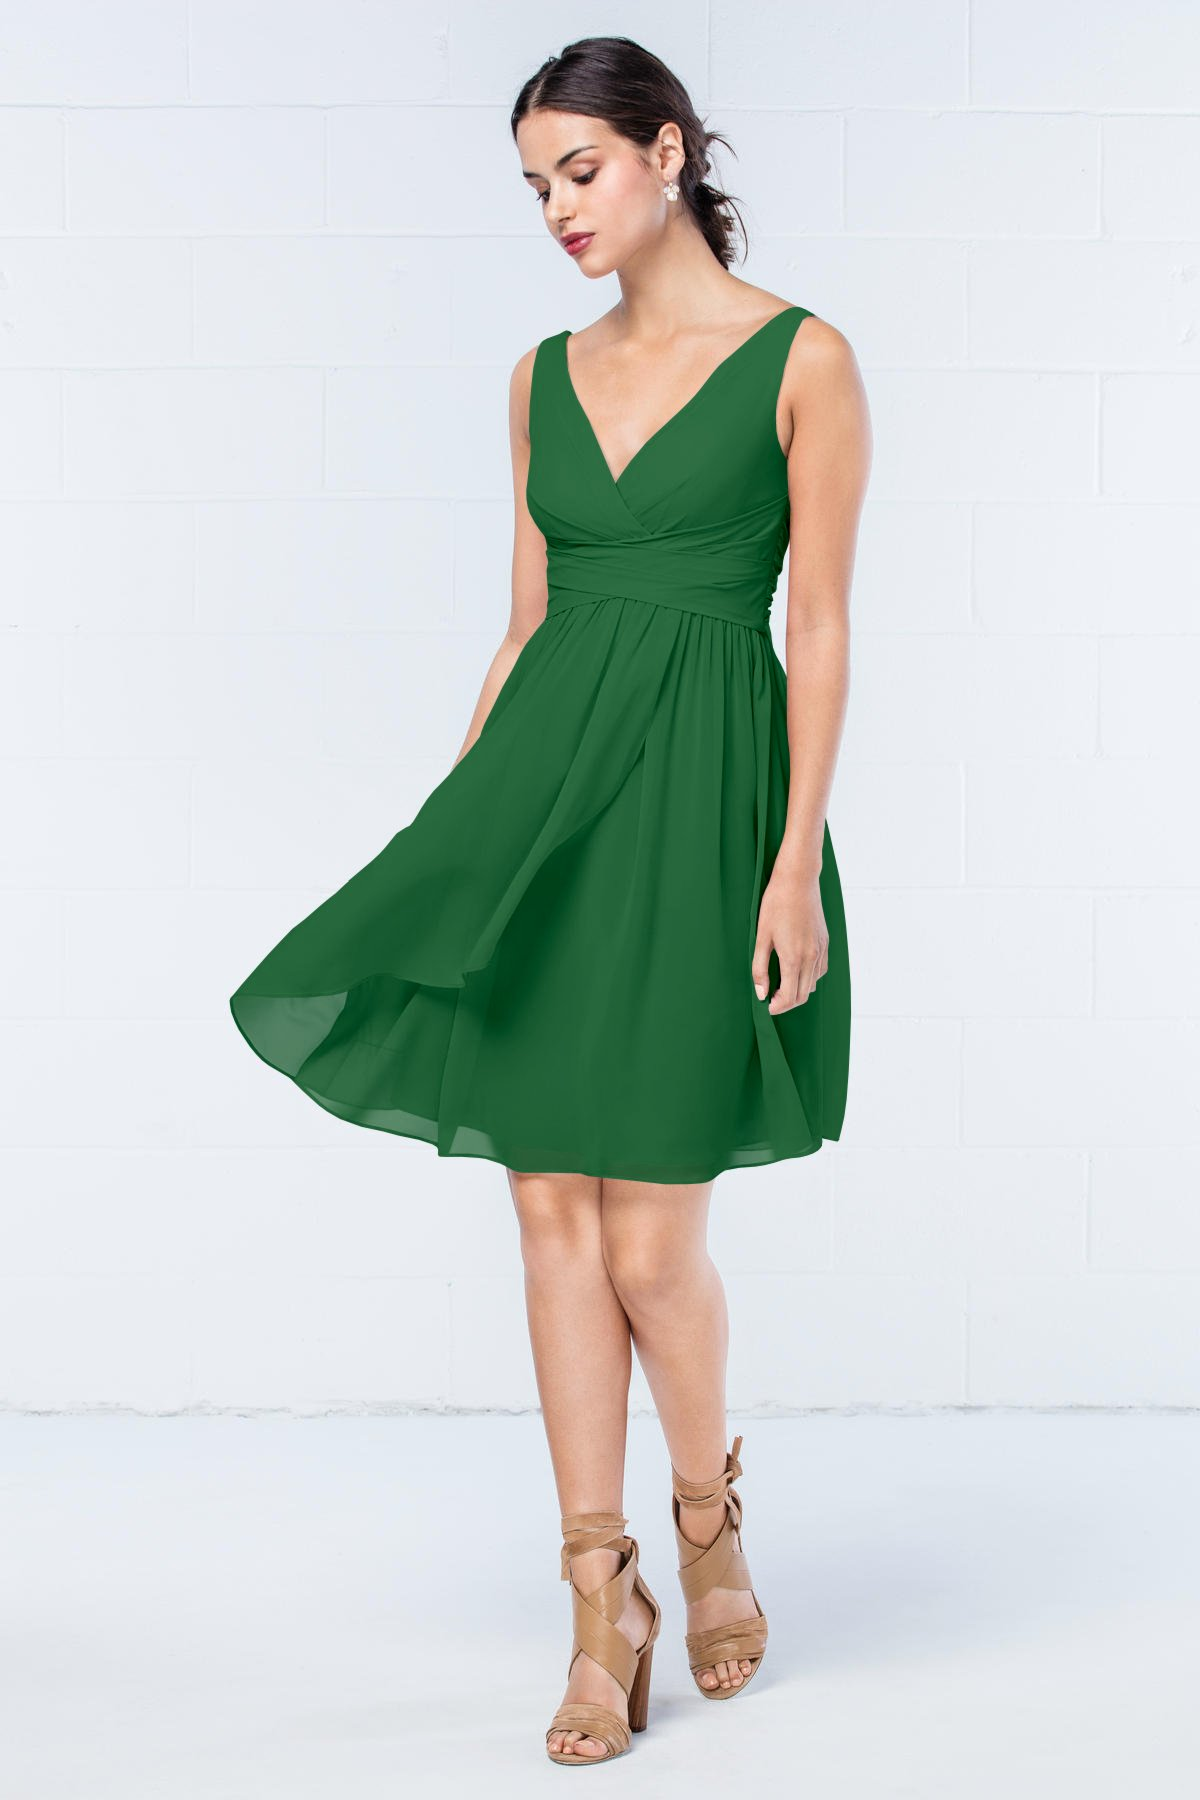 Short Emerald Green Summer Bridesmaid Dress  Budget